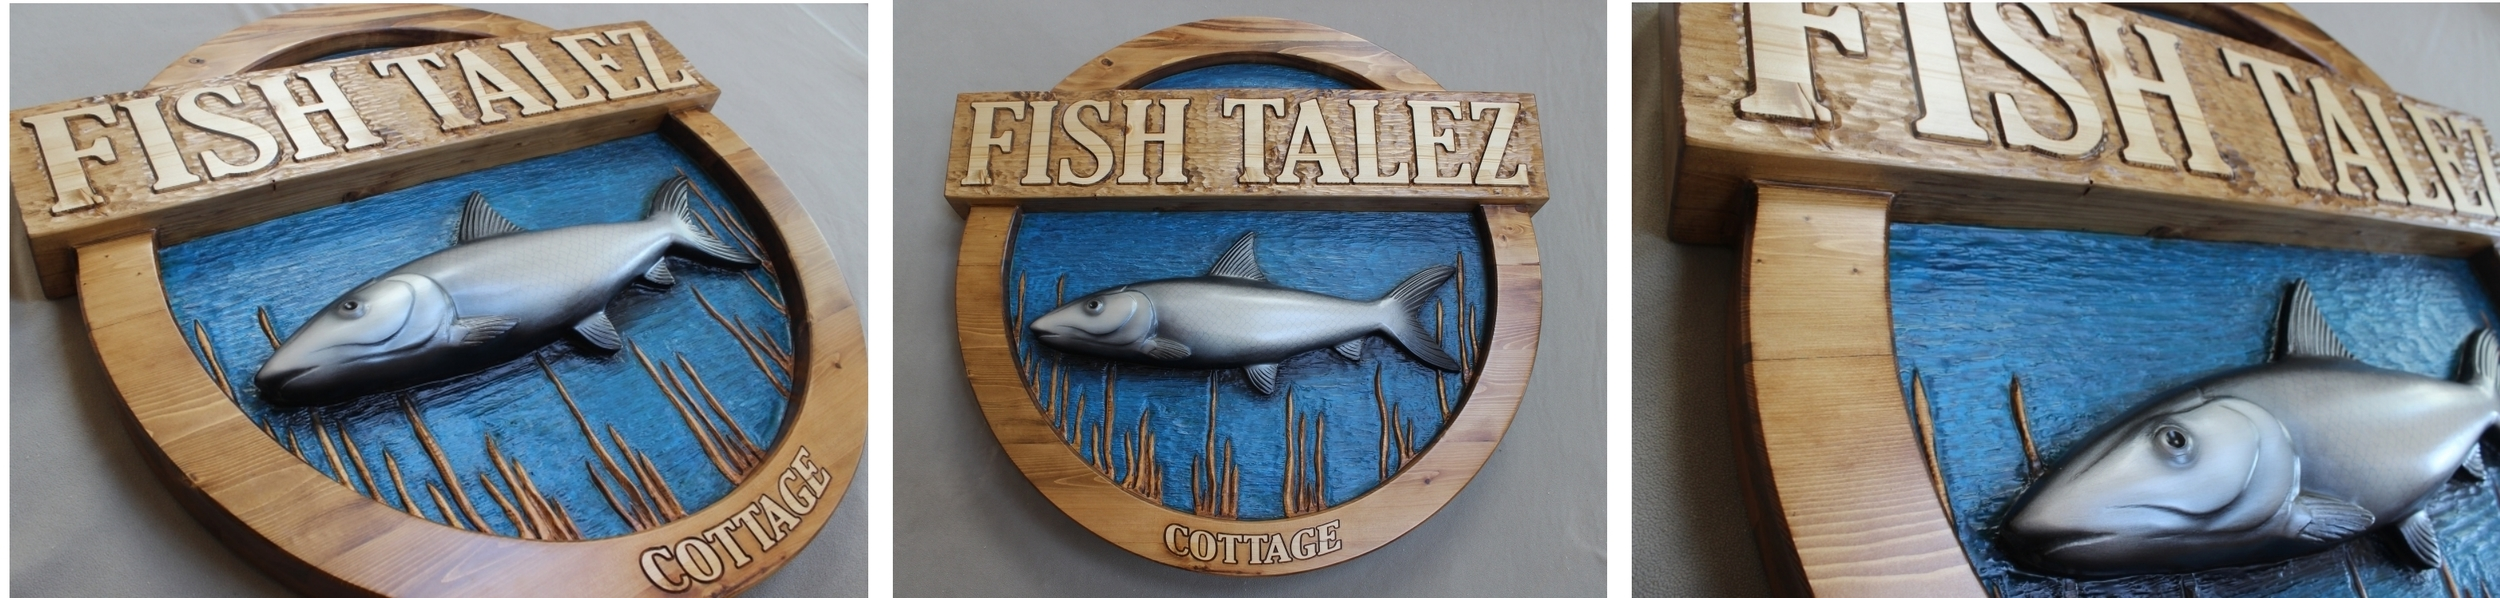 Fish Talez - A 4' diameter bonefish sign for a fisherman's home in Florida. By Lazy River Studio